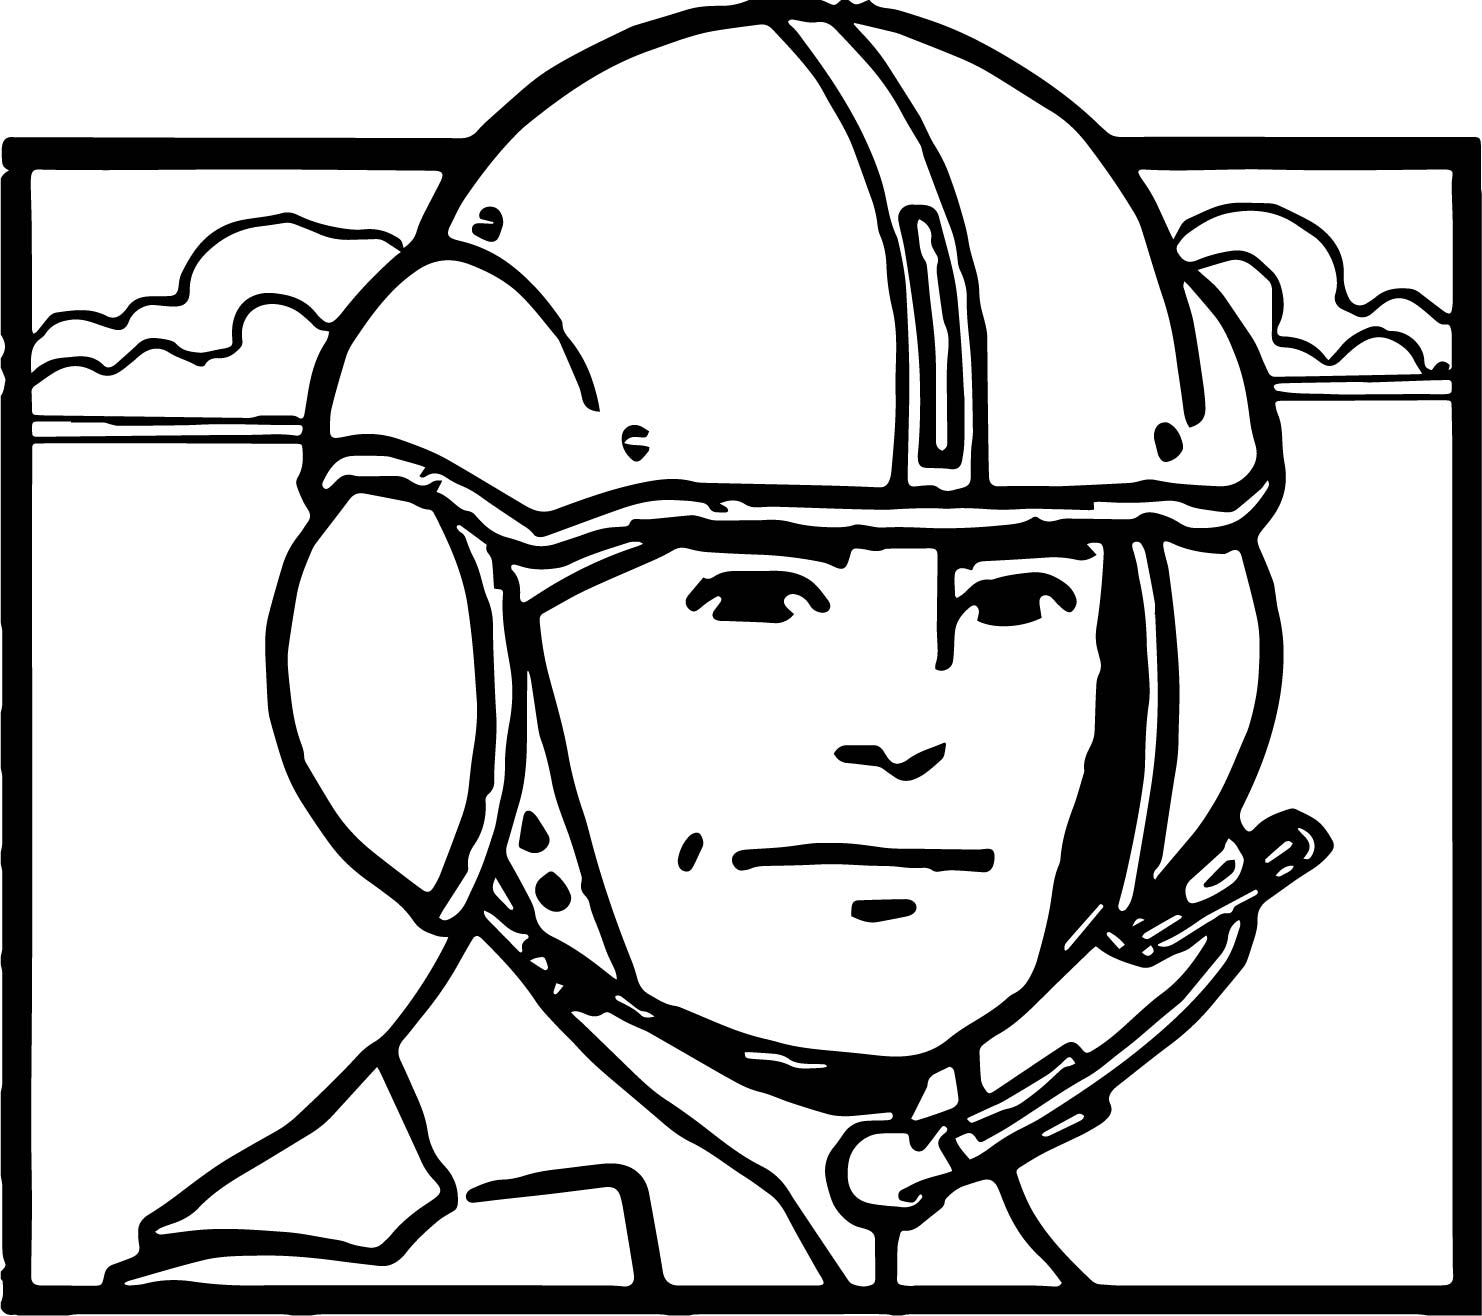 Los Angeles Kings Logo Flyers Coloring Page Of Logo Flyers Coloring Pages